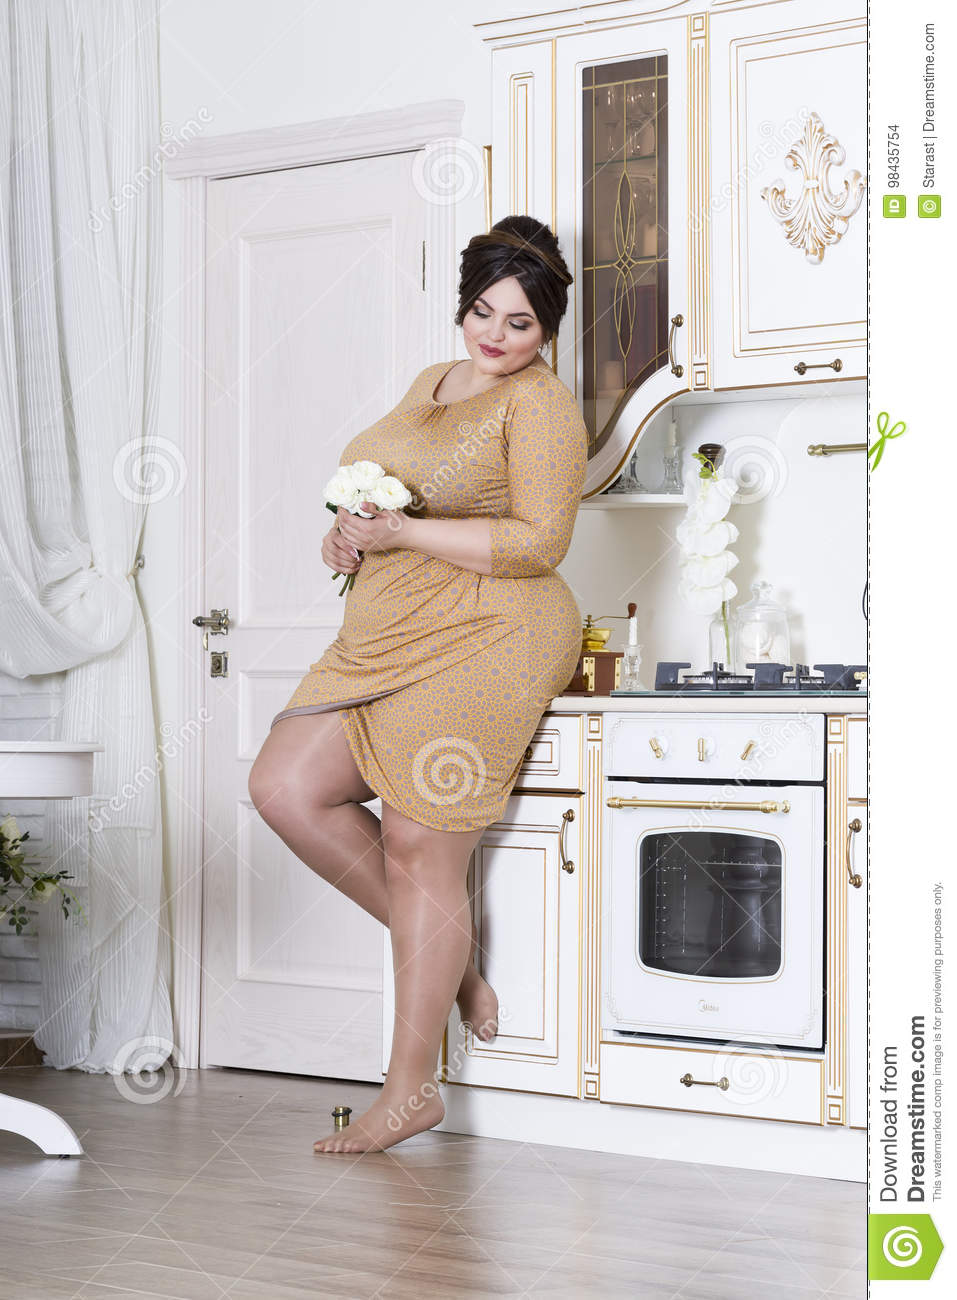 Sexy chubby women cooking